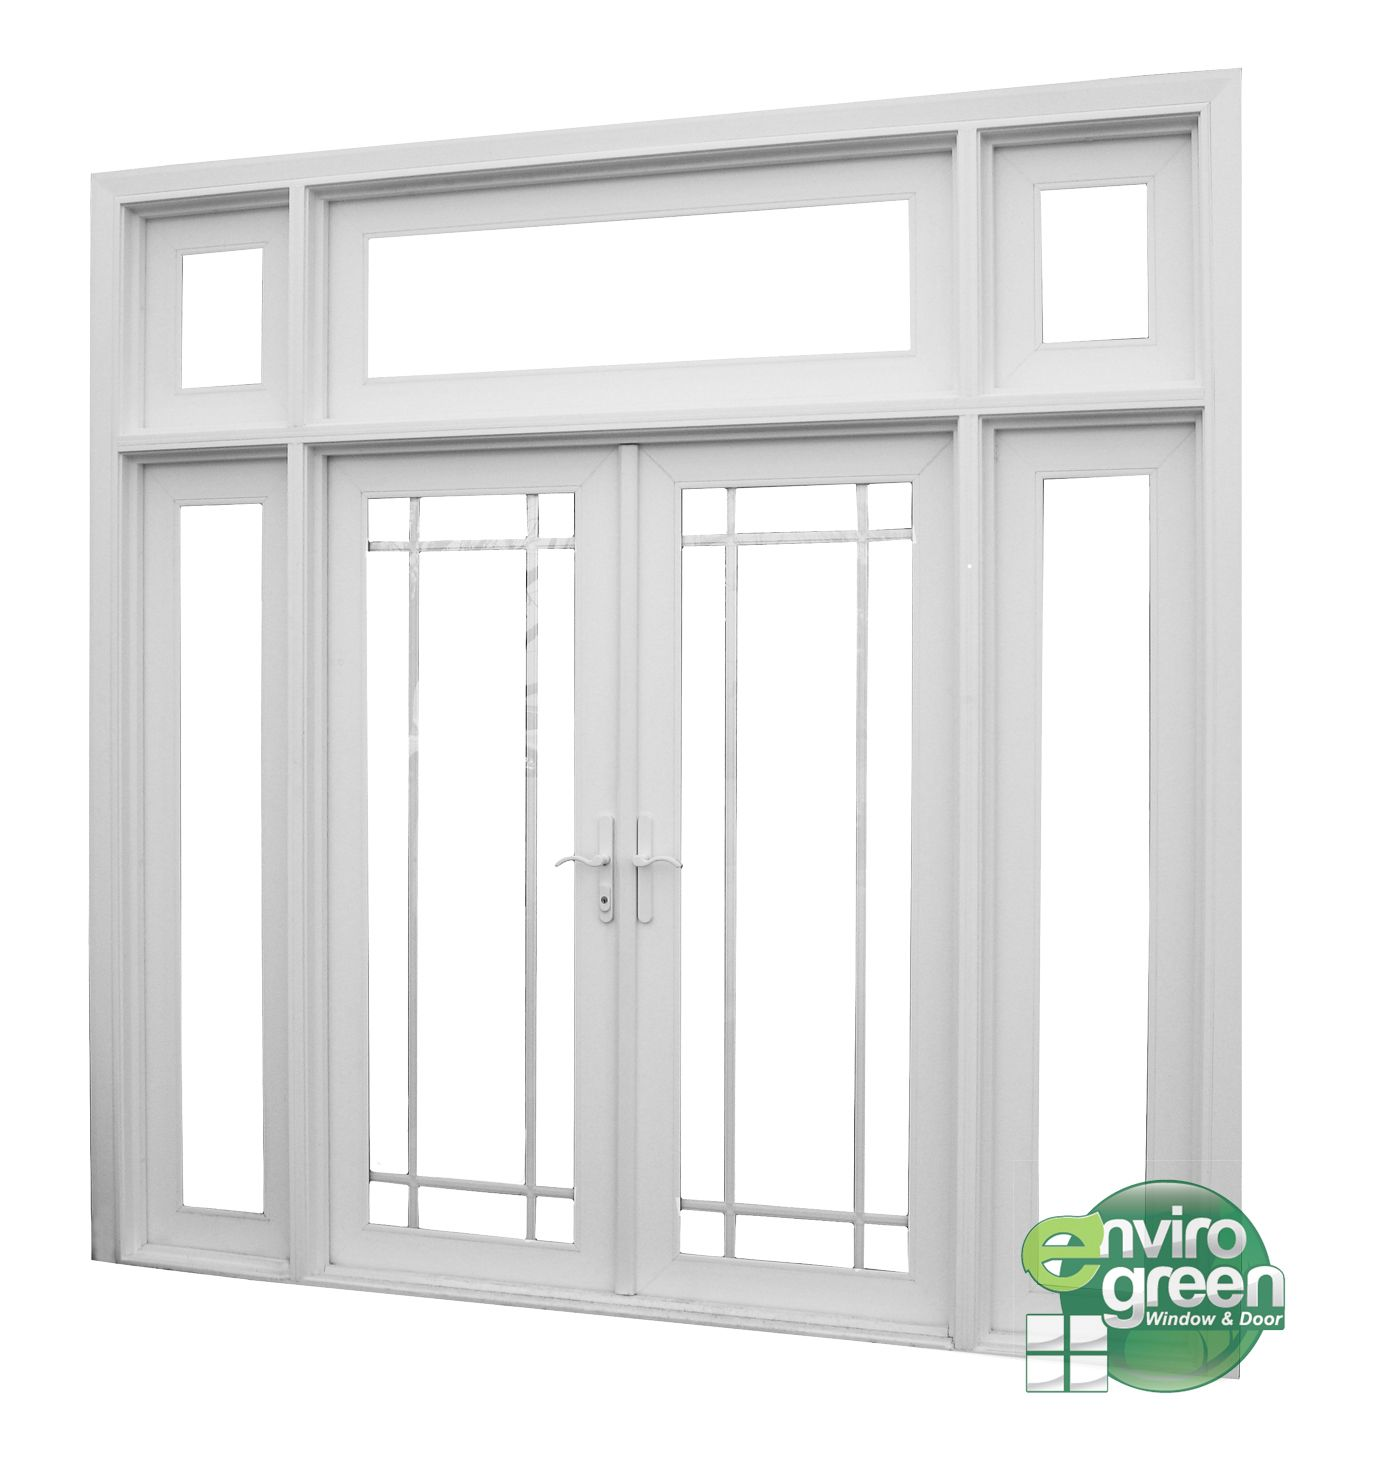 Sliding french doors price - Single Patio Door With Side Lights French Door Envirogreen Windows Doors Duarte Californiaenvirogreen